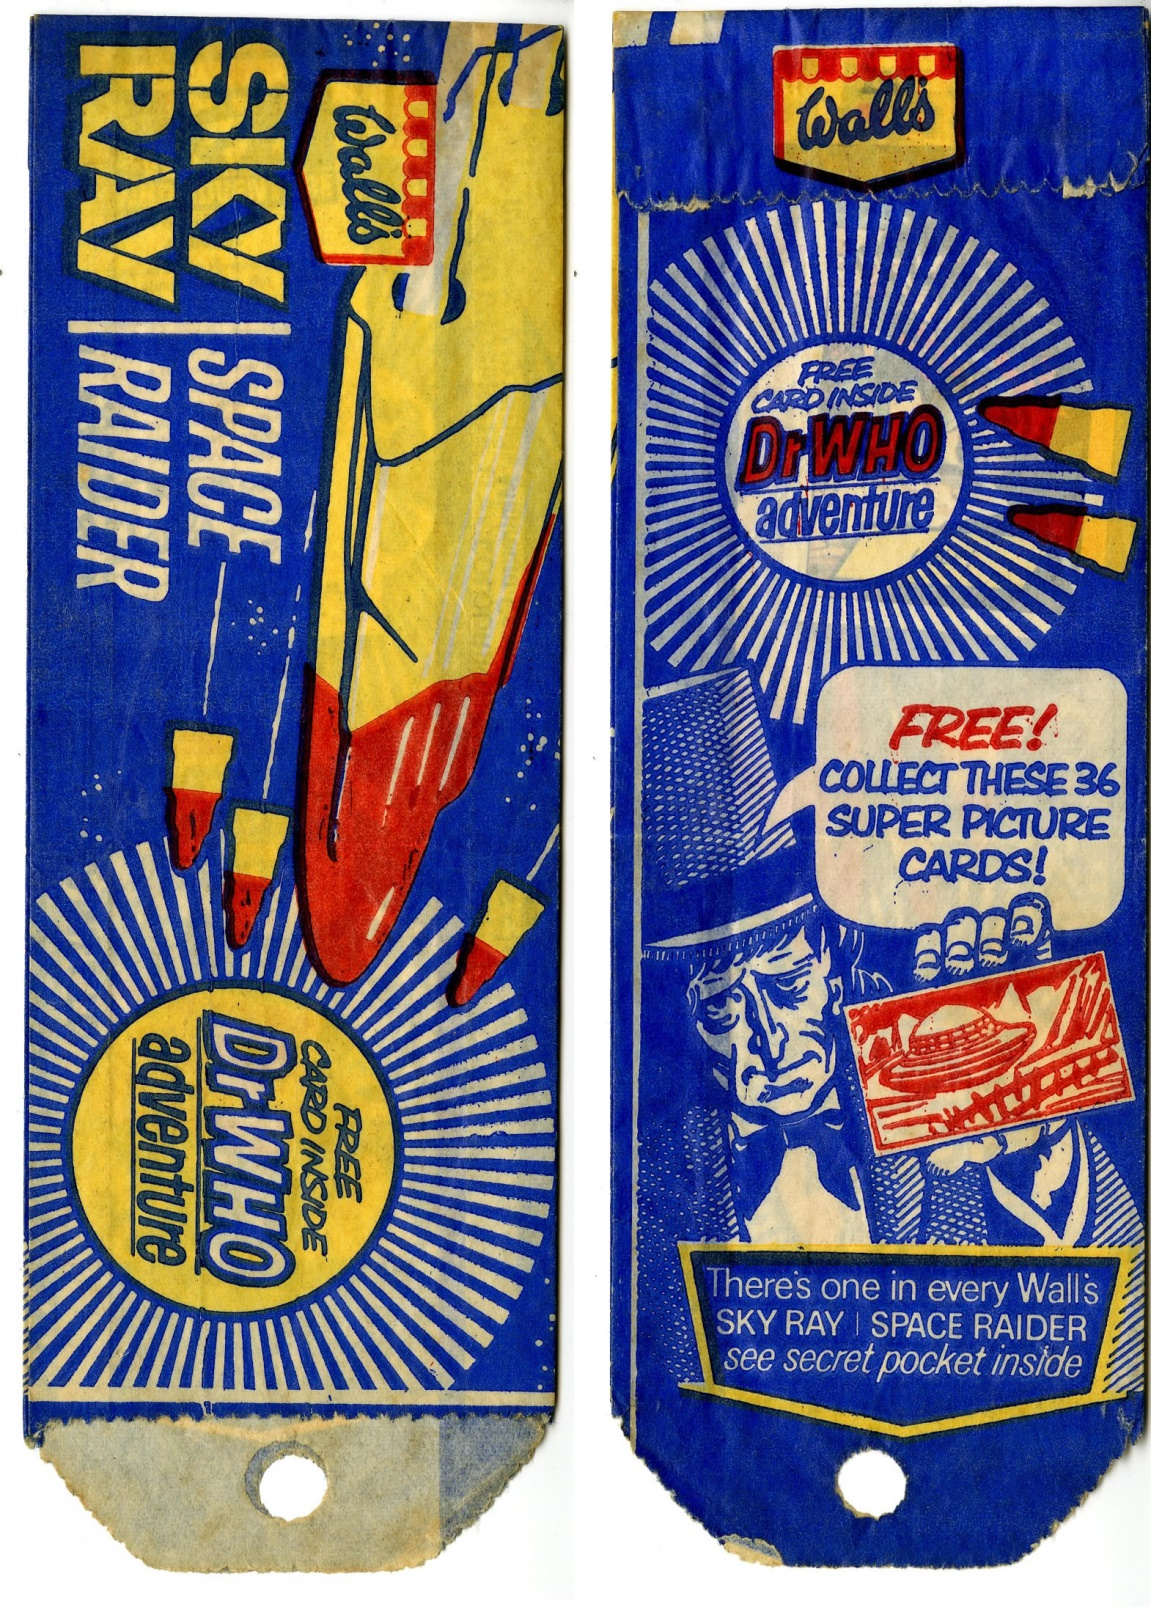 Wrapper for a Wall's Sky Ray lolly with the Dr. Who promotion